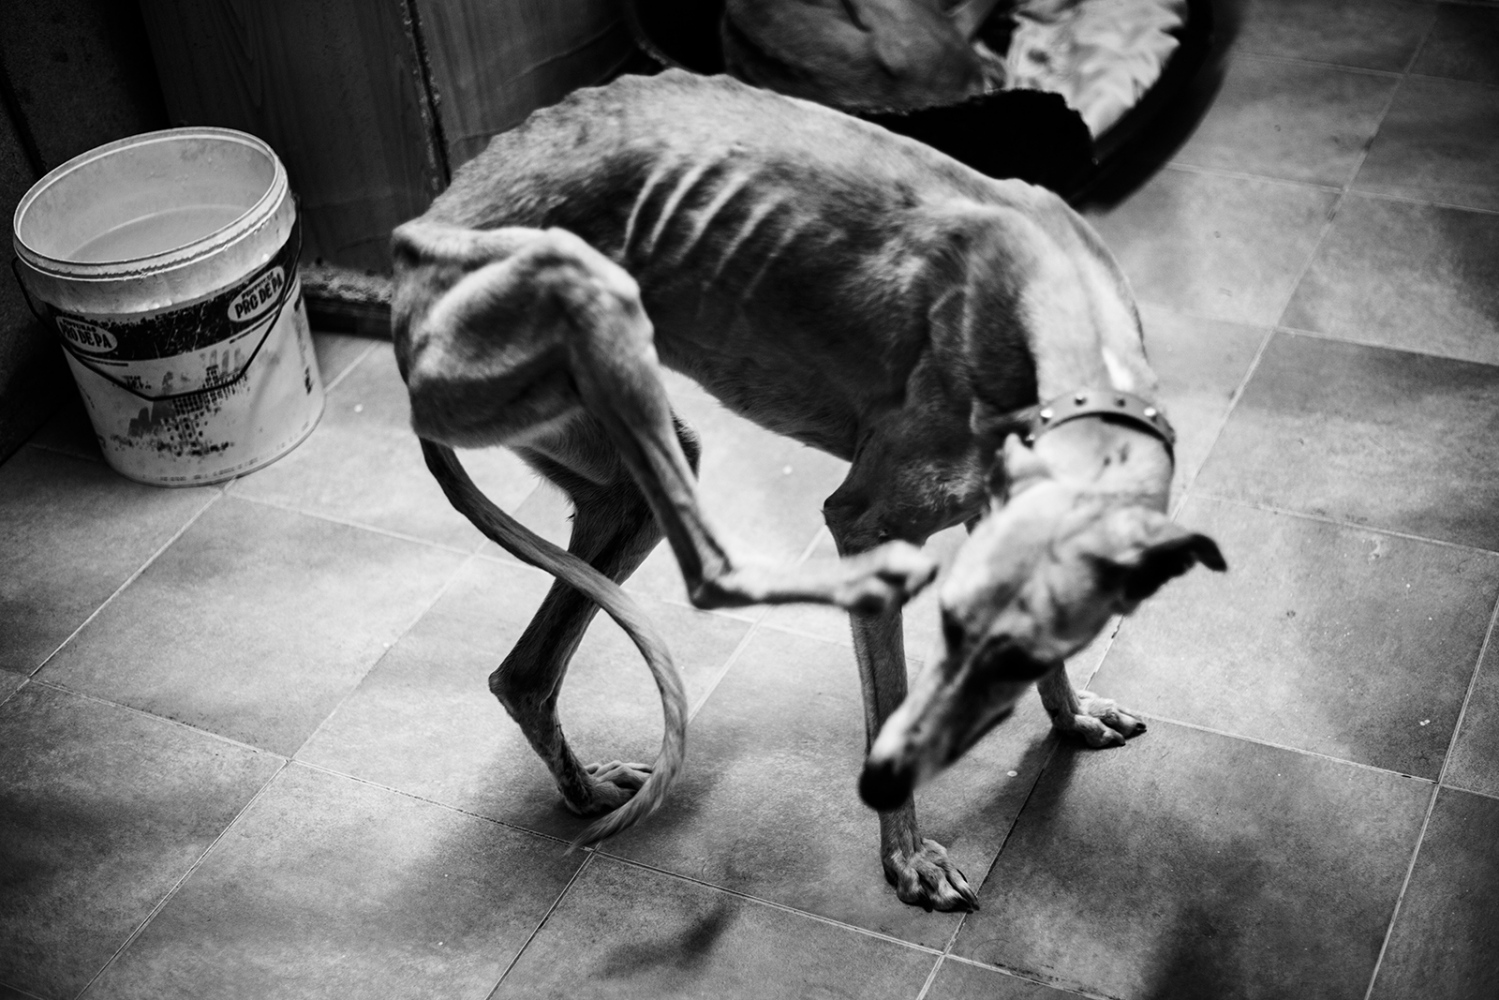 Abandoned greyhound transferred to a shelter. Many times the dogs come to the shelters severely injured and in extreme conditions of thinness. Ciudad Real, Spain.